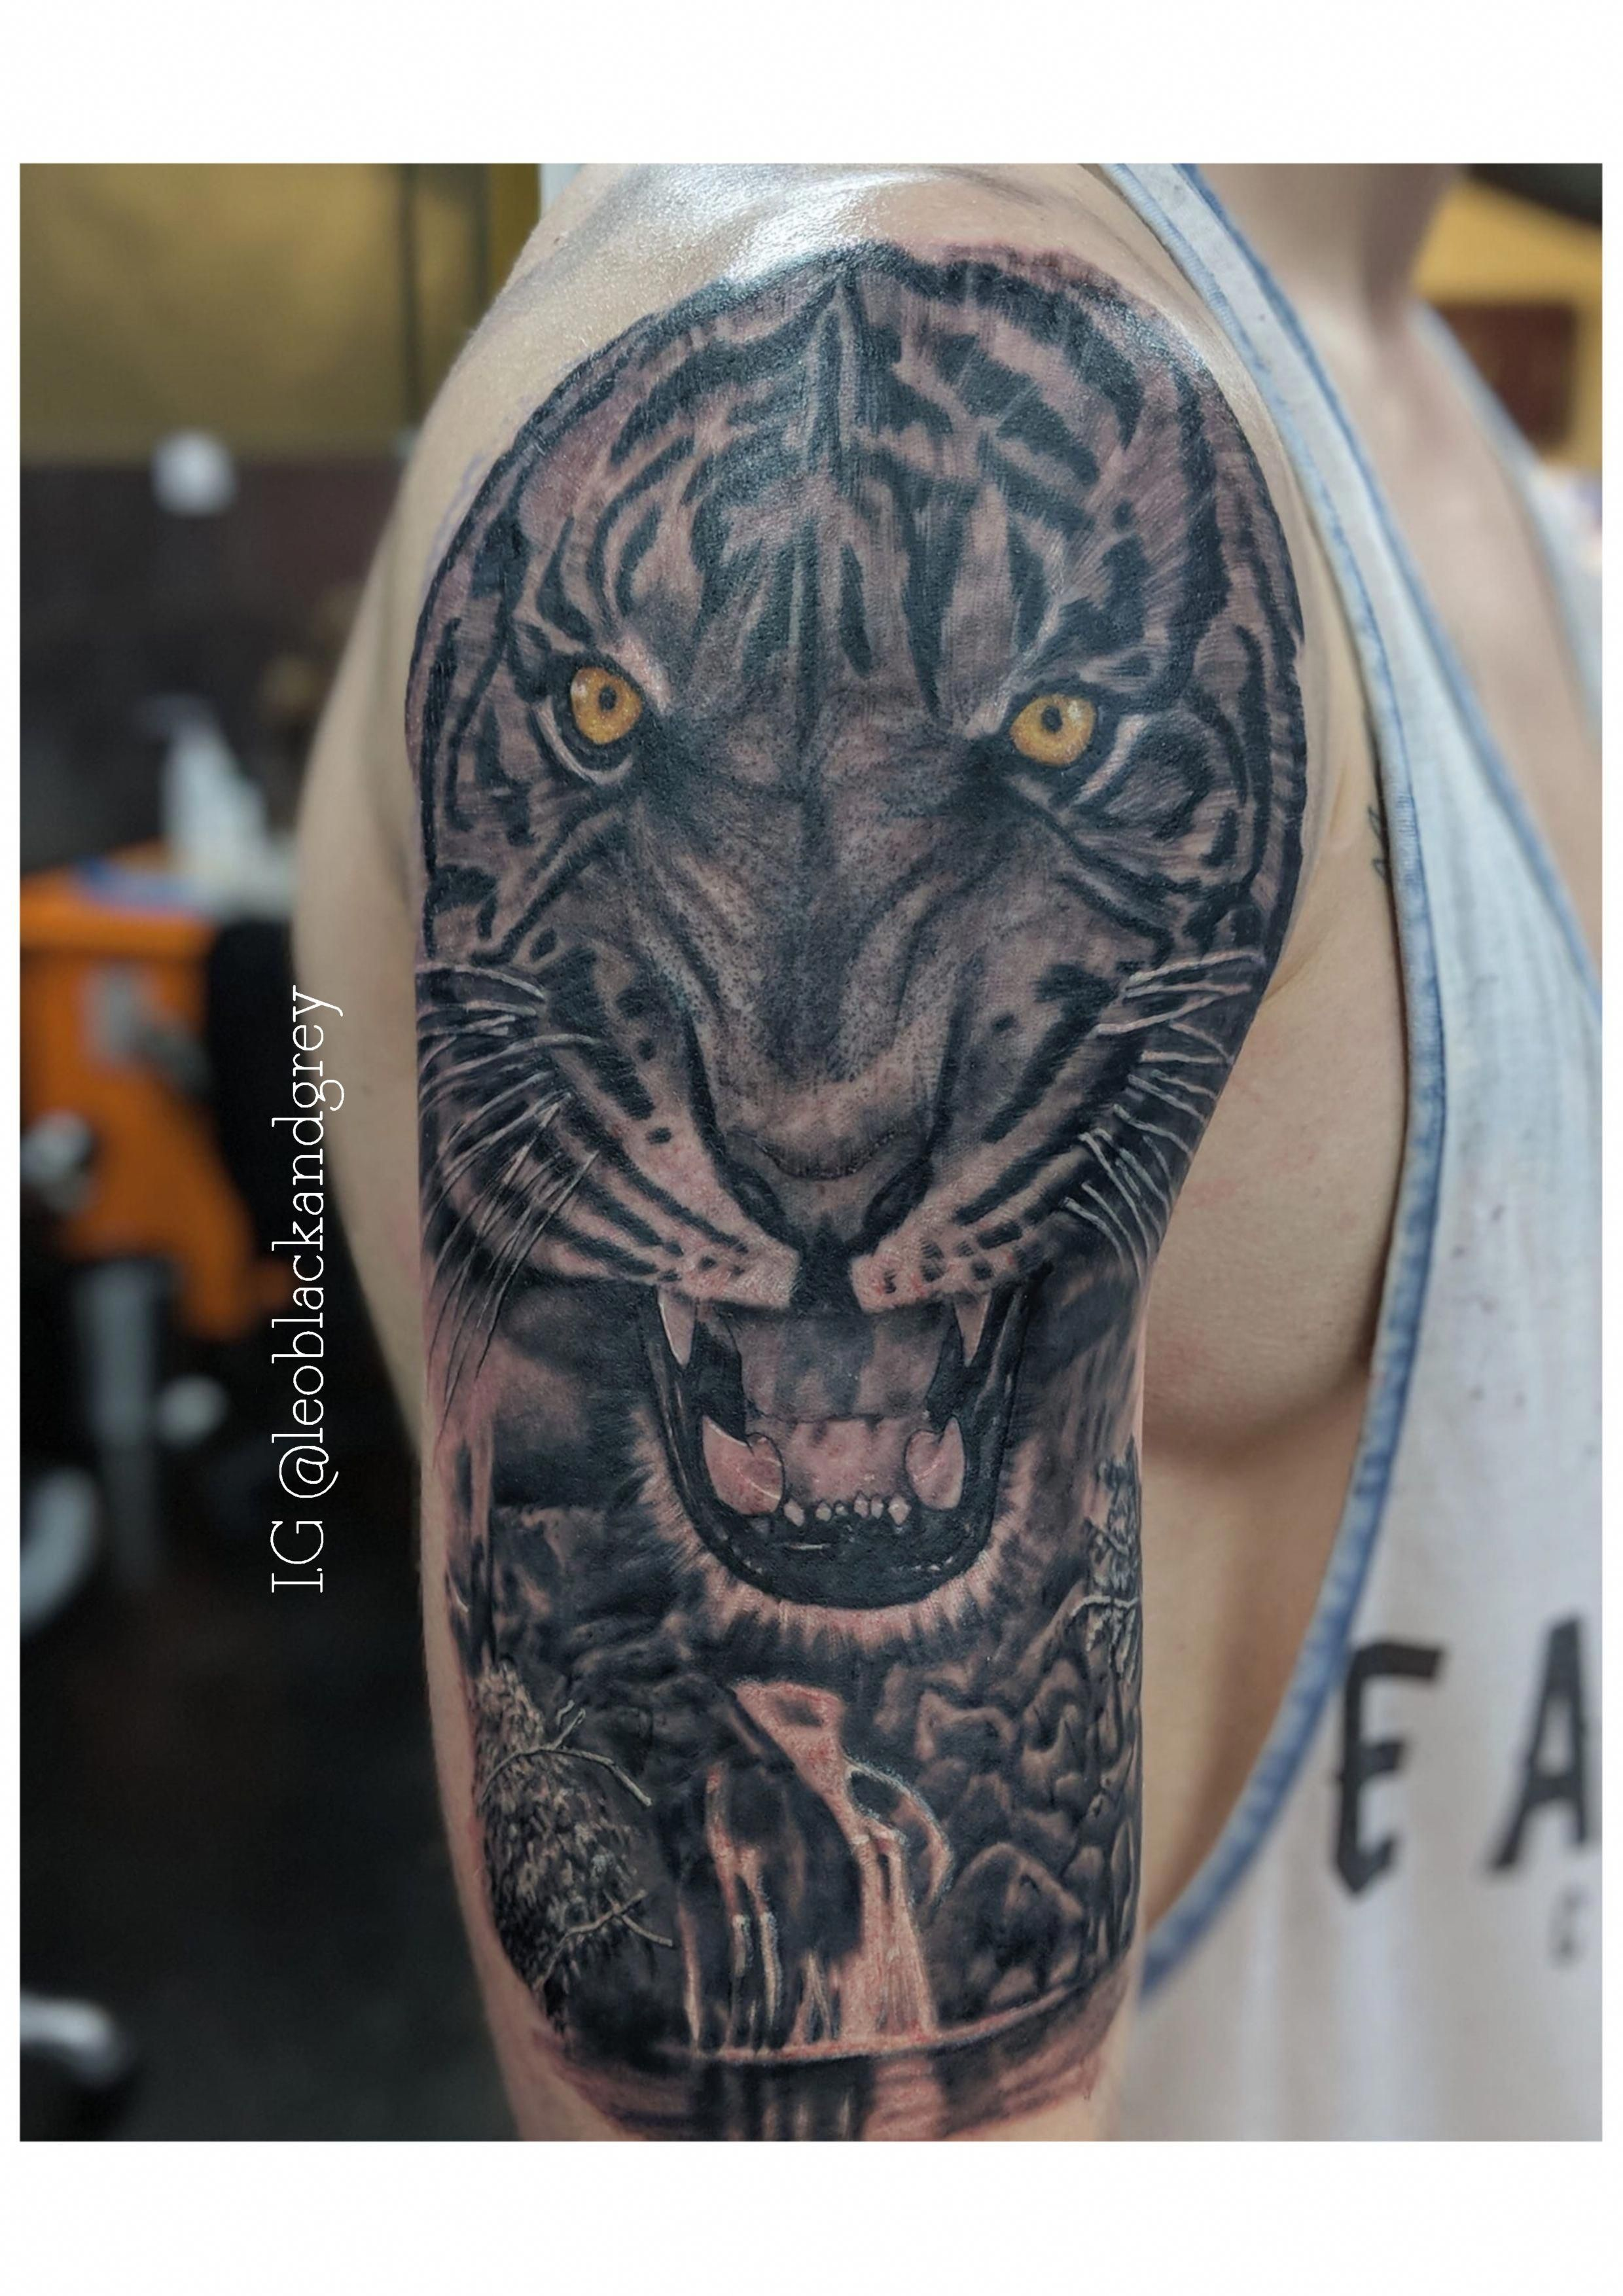 Tiger Waterfall Tattoo Sleeve For Men Topmenstattoos Waterfall Tattoo Tattoos For Guys Cool Tattoos For Guys